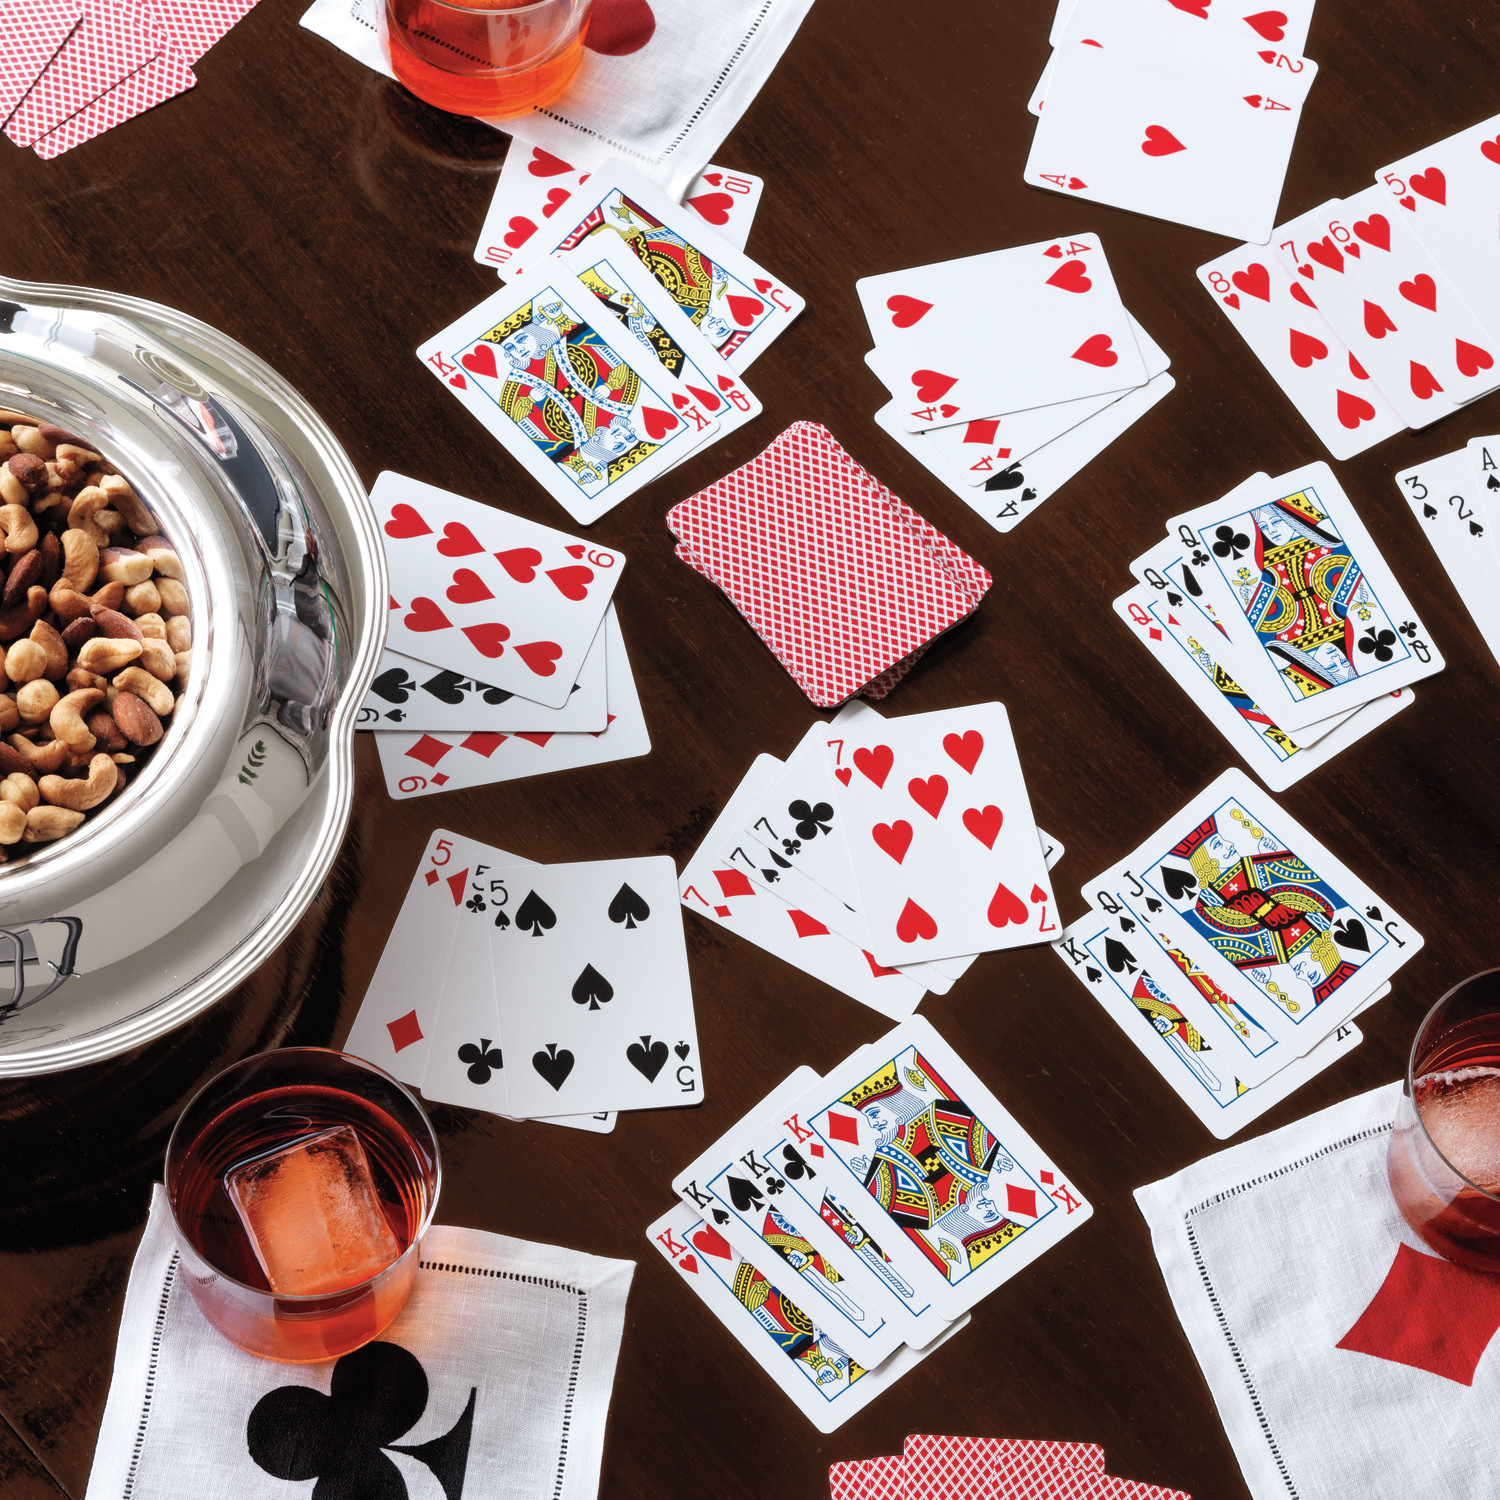 How to Host a Casino Night at Home